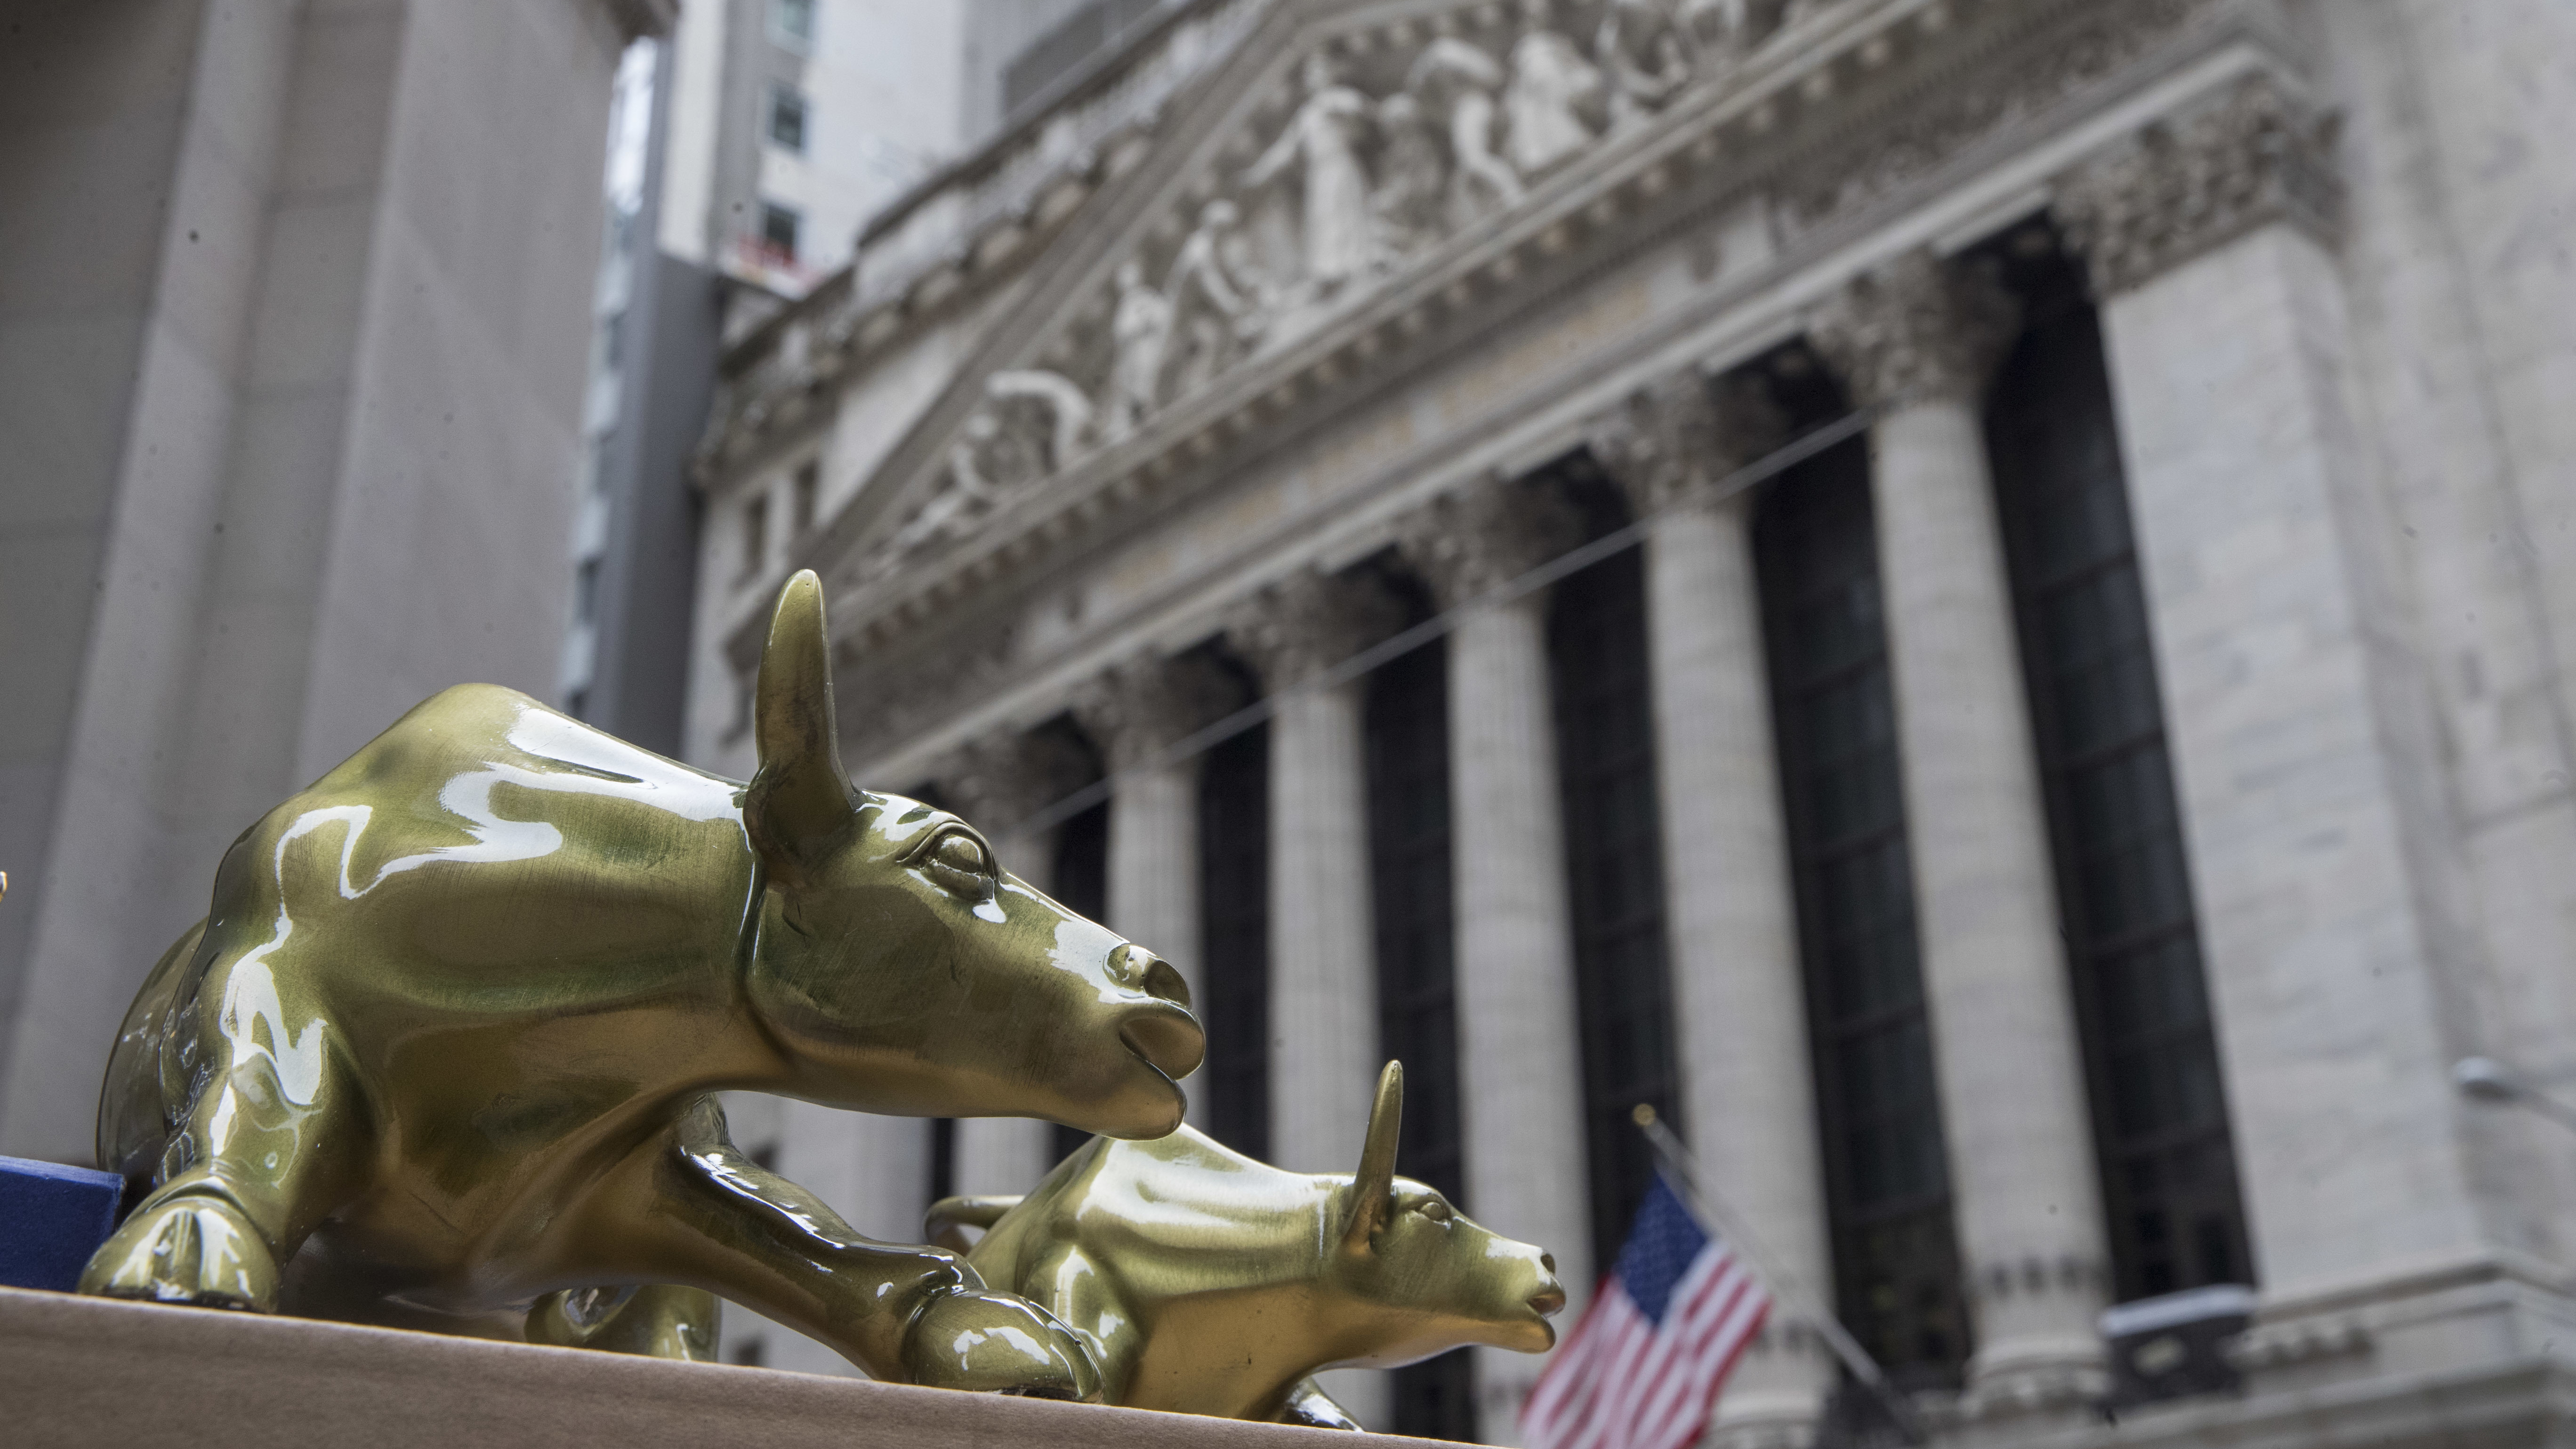 """Replicas of Arturo Di Modica's """"Charging Bull"""" are for sale on a street vendor's table outside the New York Stock Exchange, Tuesday, April 24, 2018, in New York. Stocks are closing sharply lower on Wall Street as big technology and industrial companies take heavy losses. (AP Photo/Mary Altaffer)"""